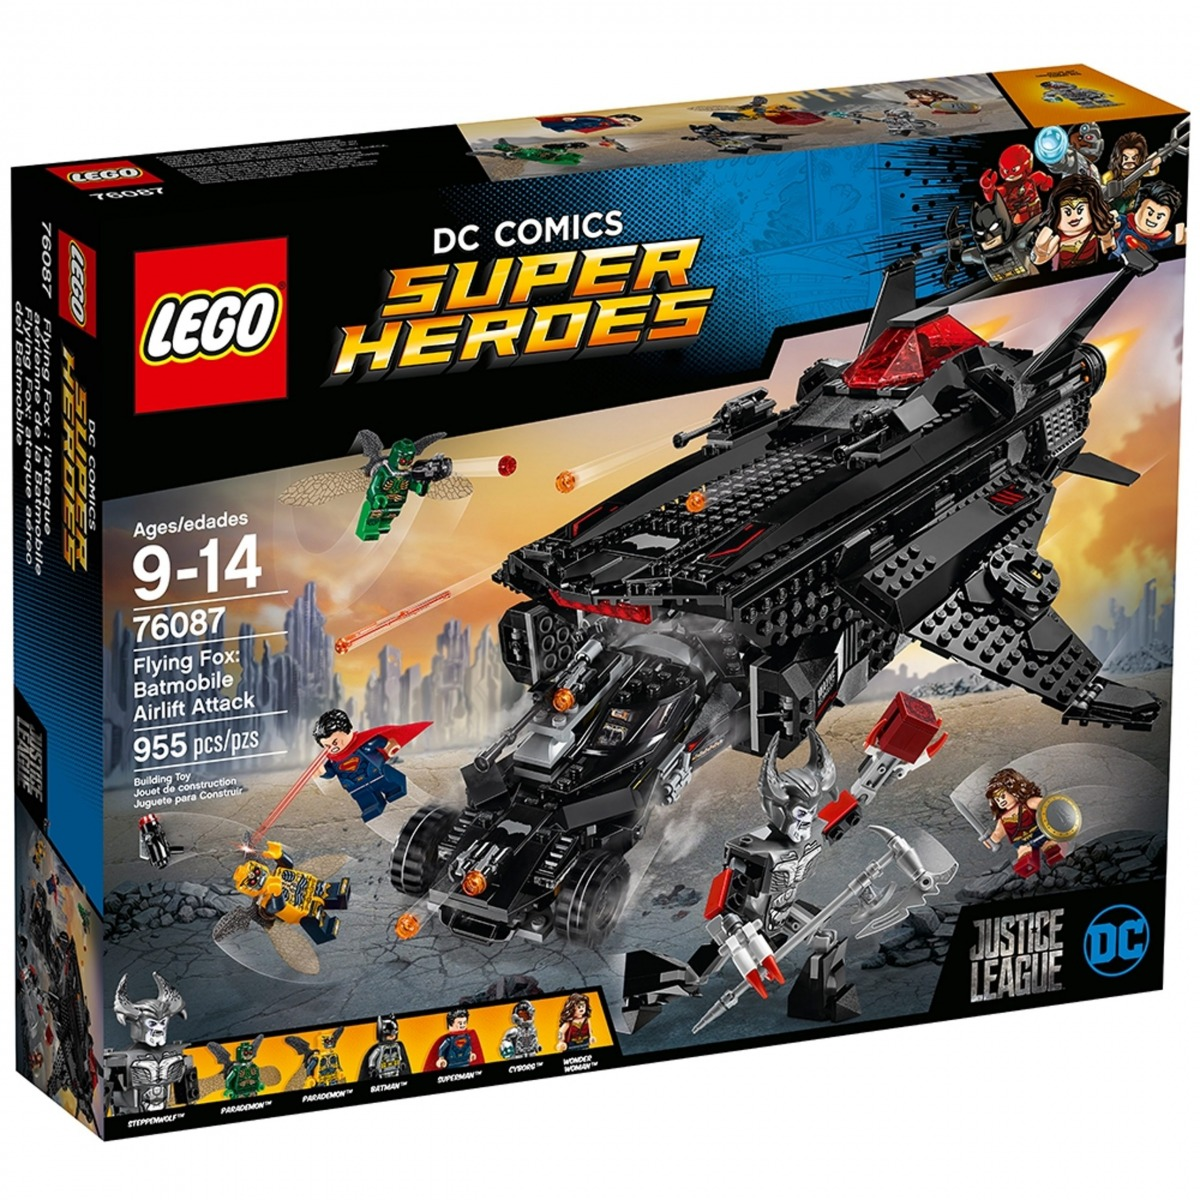 lego 76087 flying fox luftattack med batmobile scaled